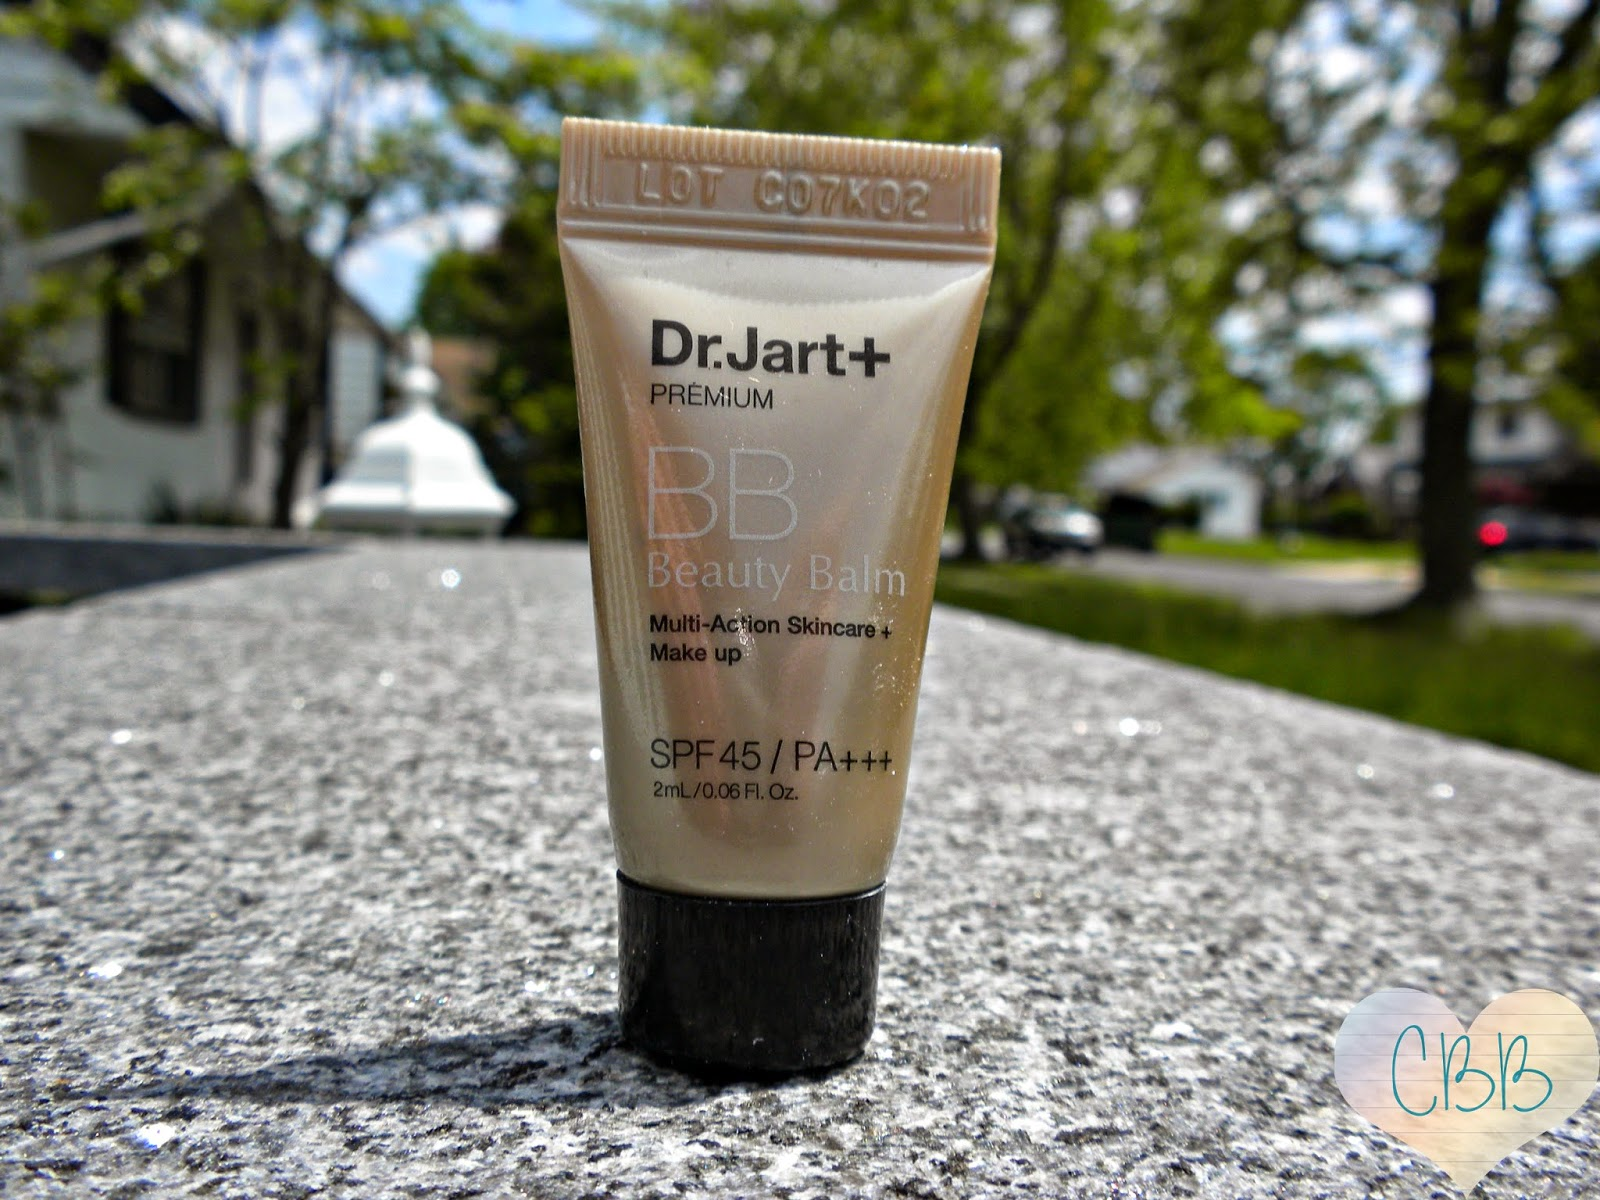 Best BB Cream or Foundation - DR. JART+ Premium Beauty Balm SPF 45 ($39 for 1.5oz)